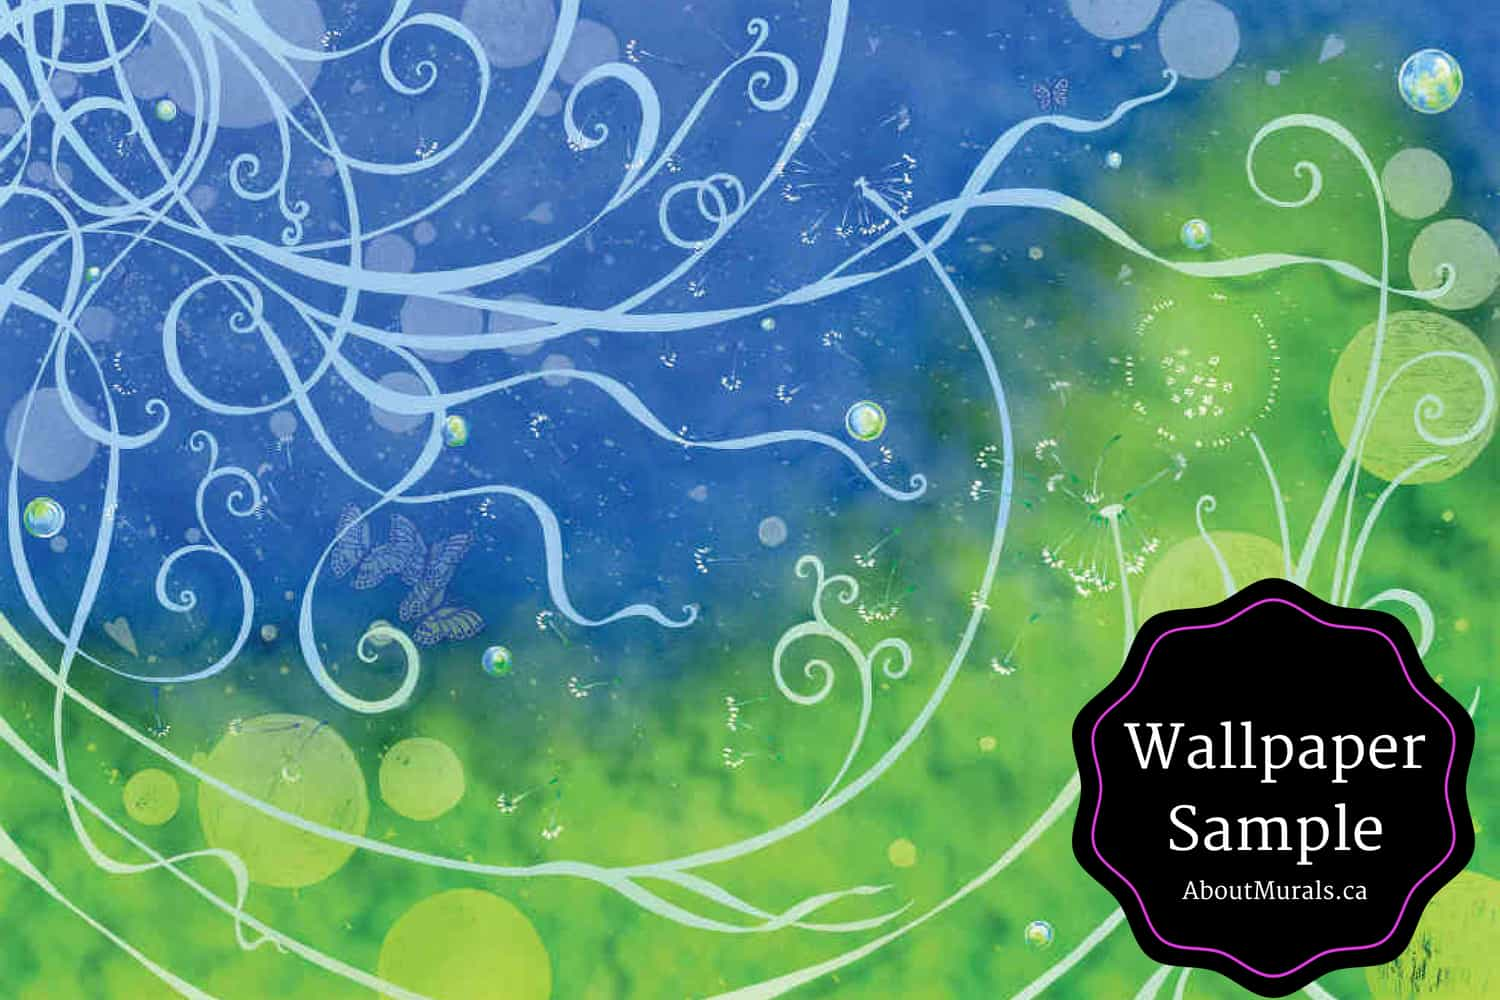 Wallpaper Samples Available For This Blue And Green Flower Mural